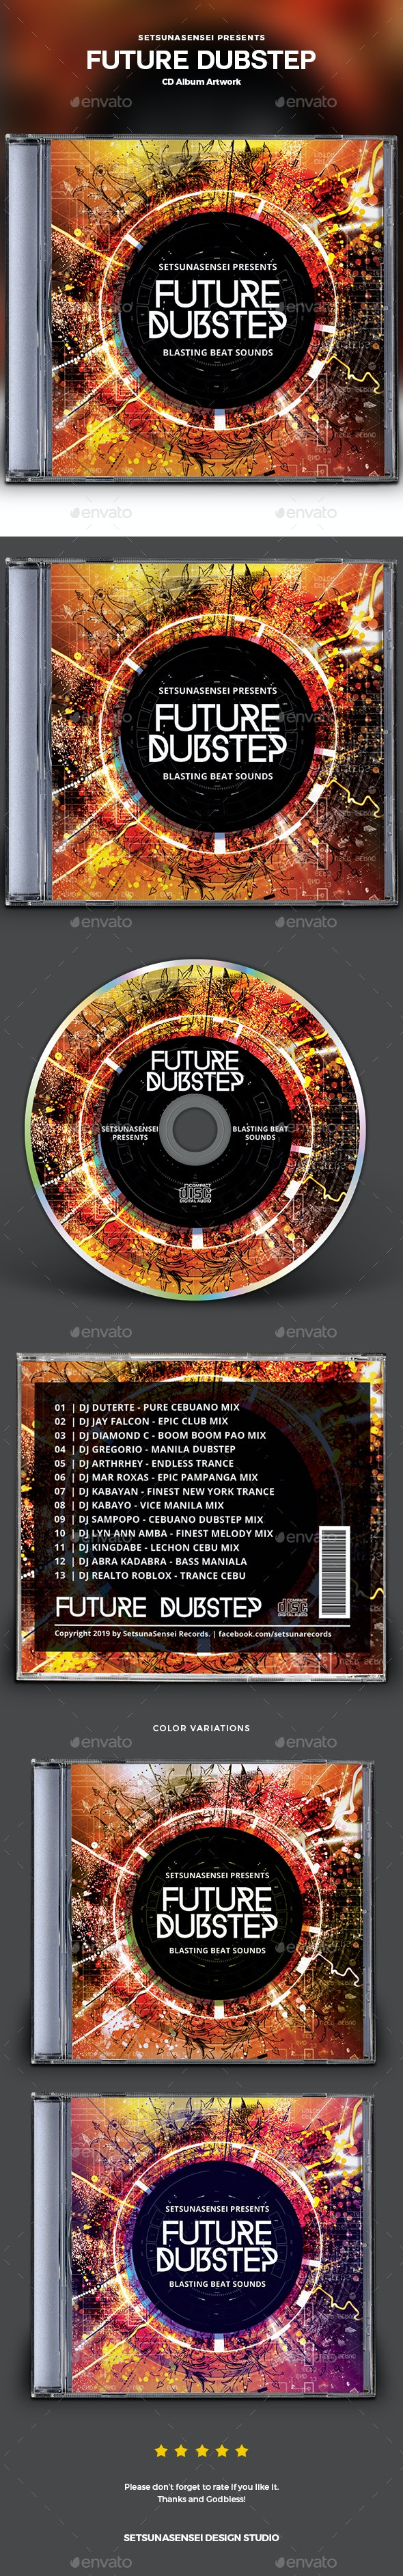 Future Dubstep CD Album Artwork - CD & DVD Artwork Print Templates